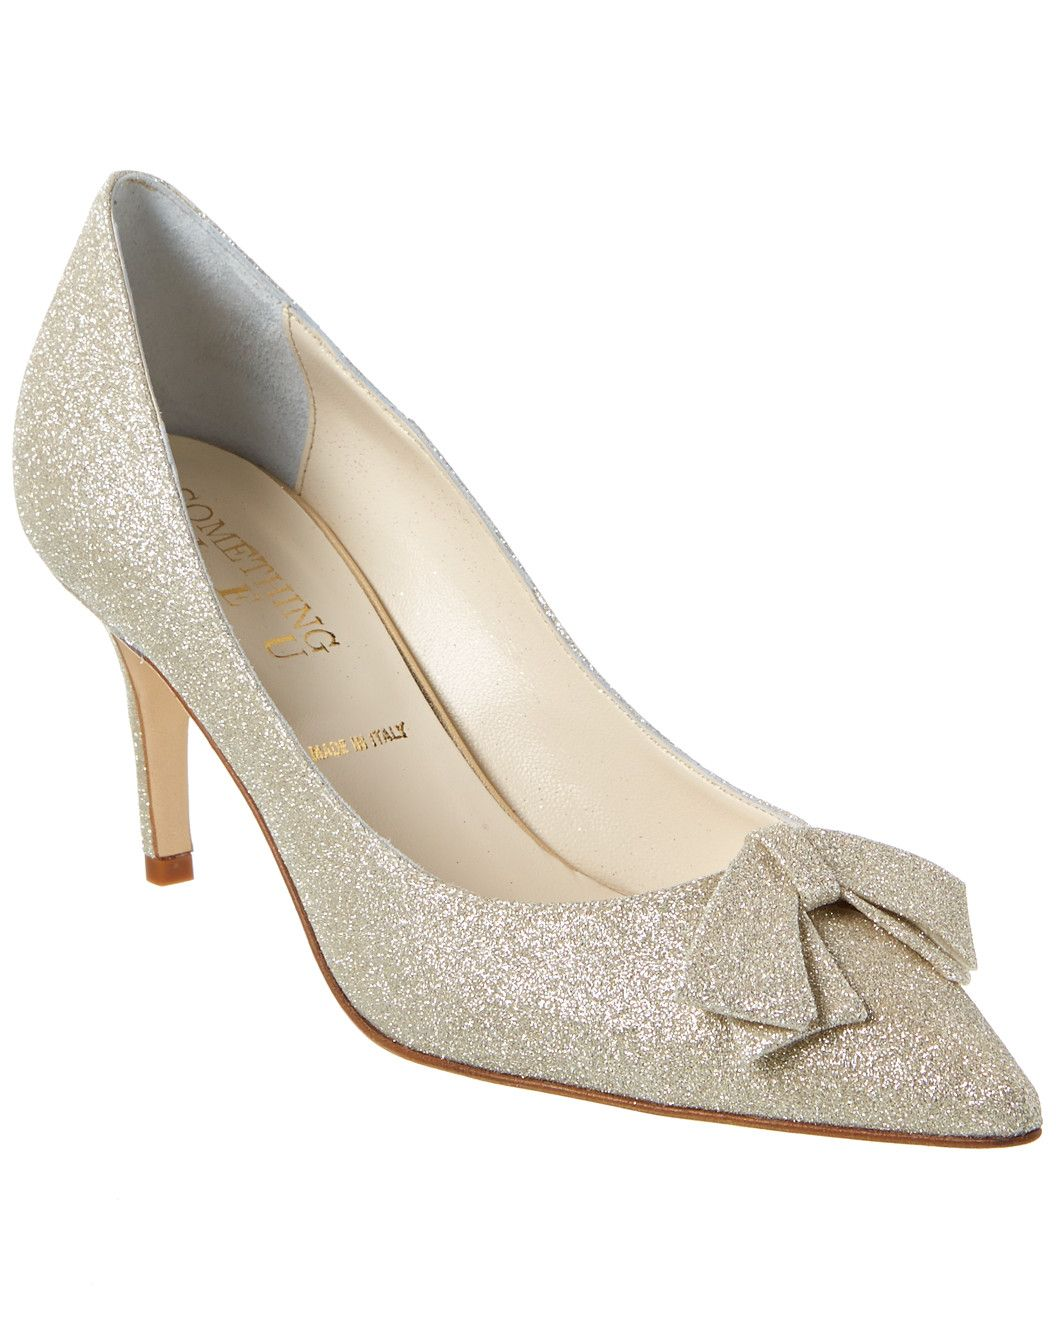 Rue La La Boutiques Wedding Shoes Heels Boutique